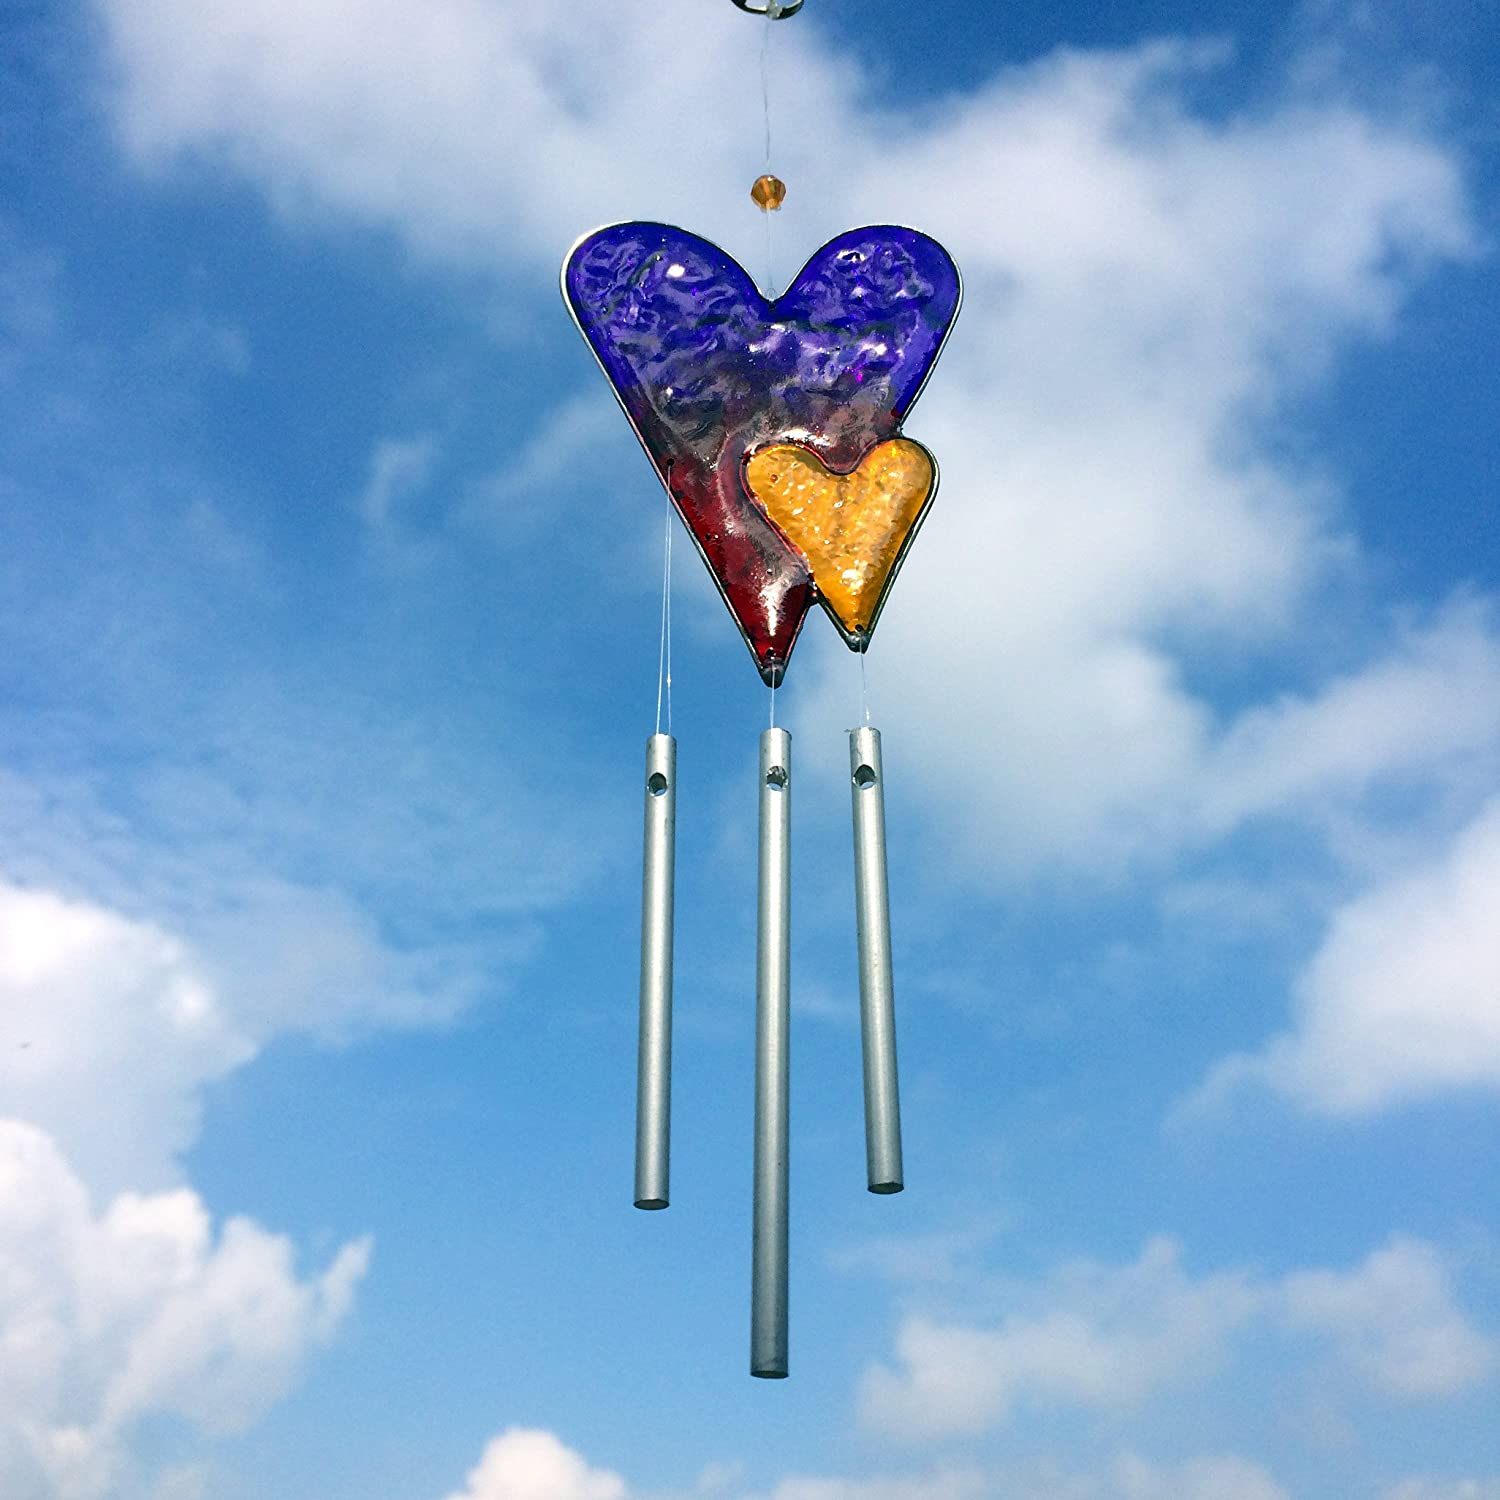 Colourful Love Heart Wind Chime Mobile Sun Catcher Fairly Traded From Bali Present Company